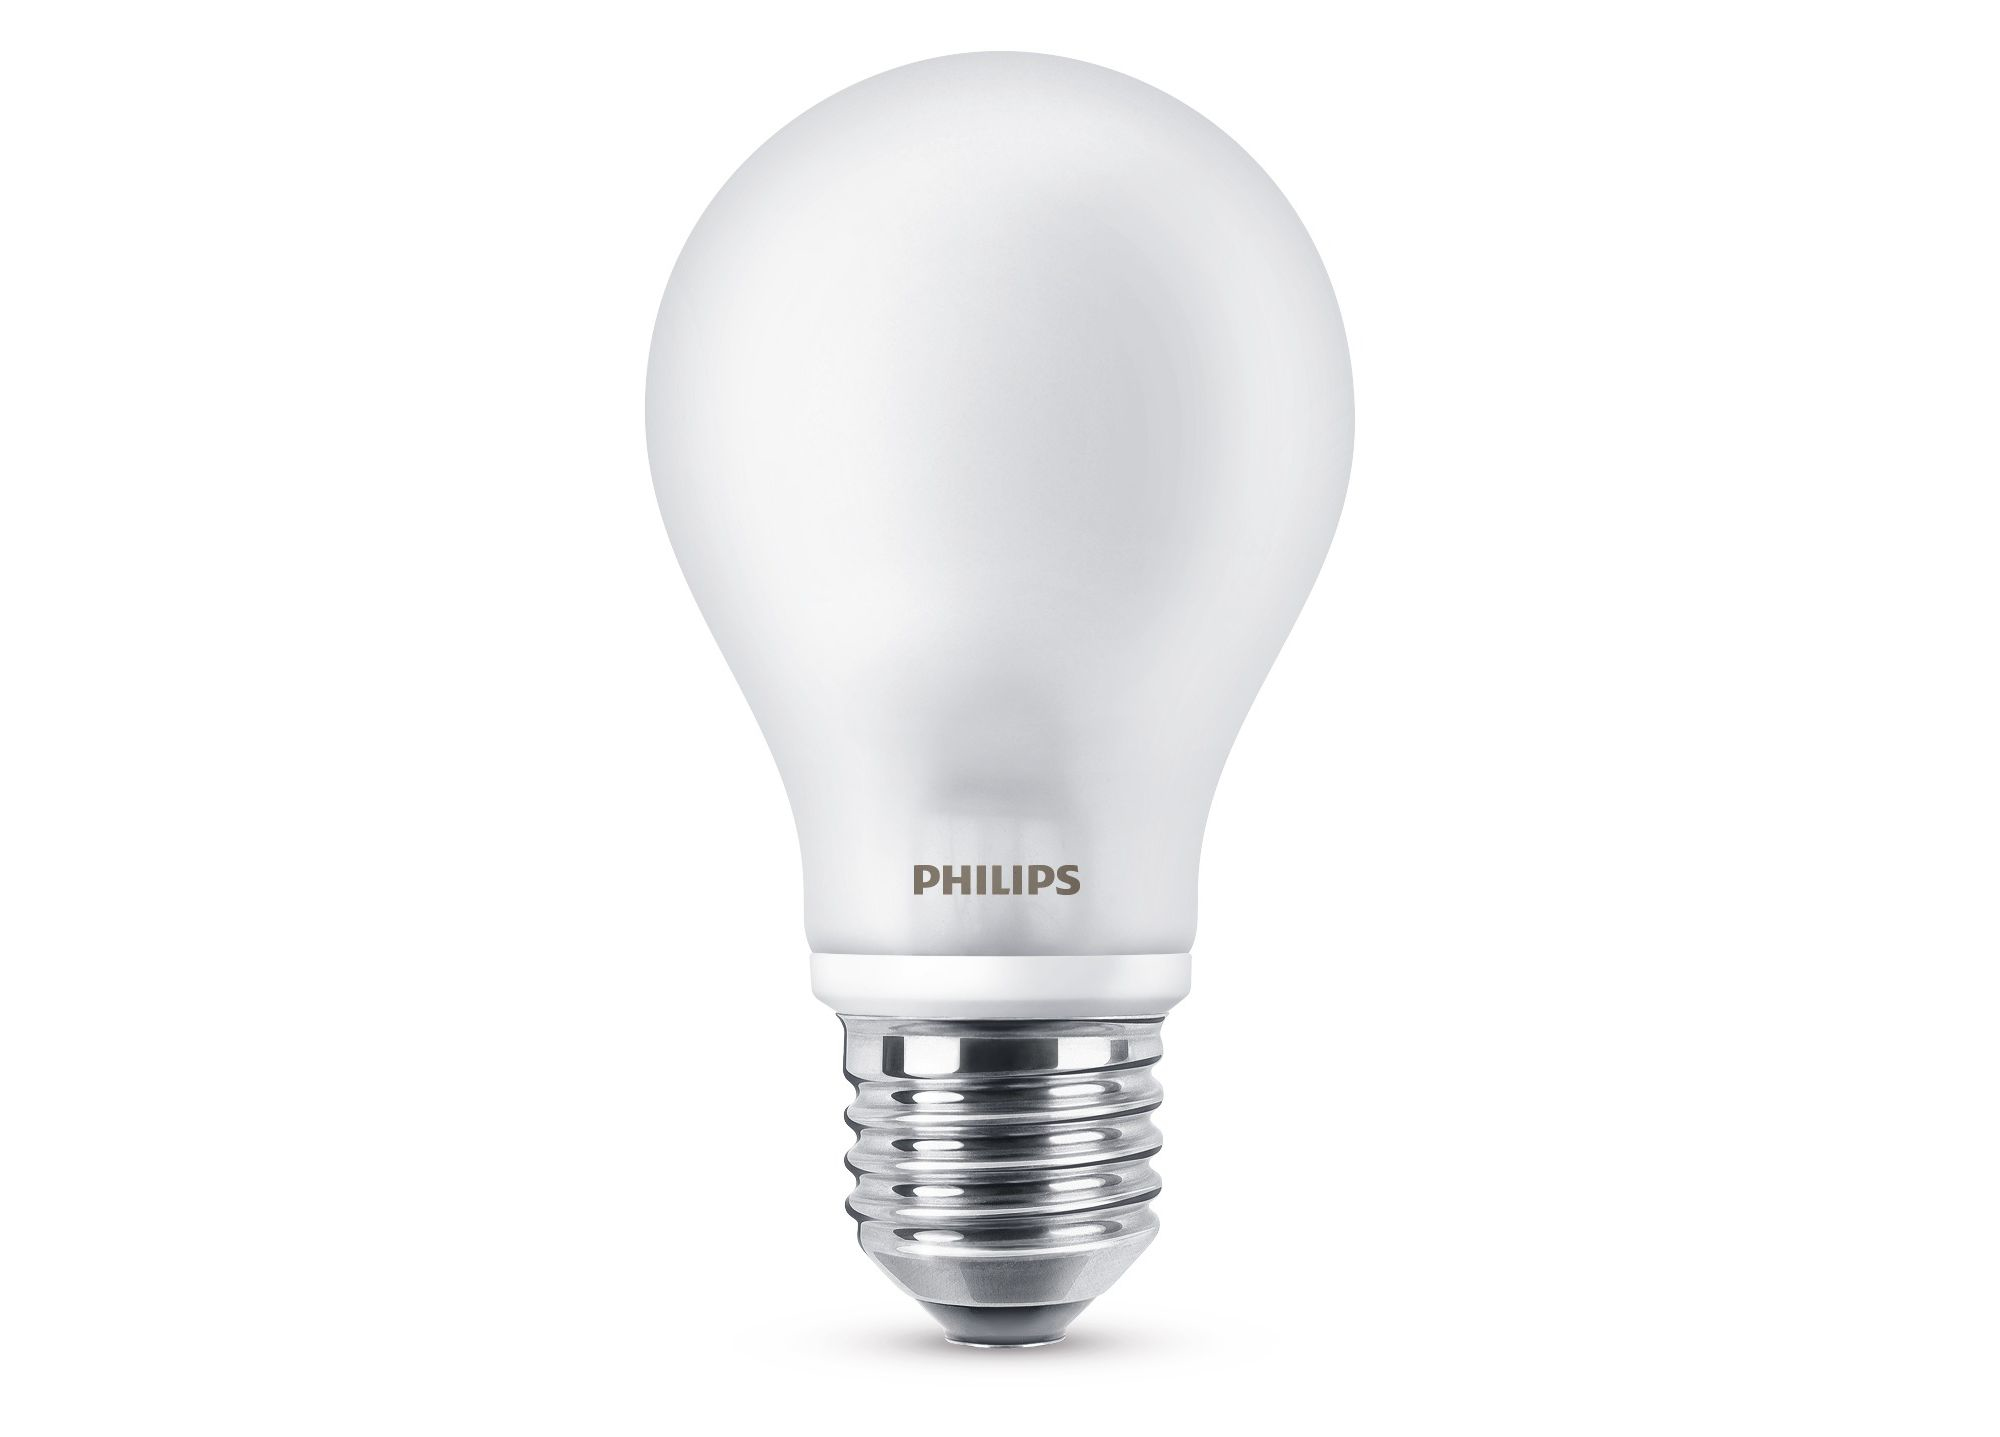 Philips - Lampadina a LED - Incaled75